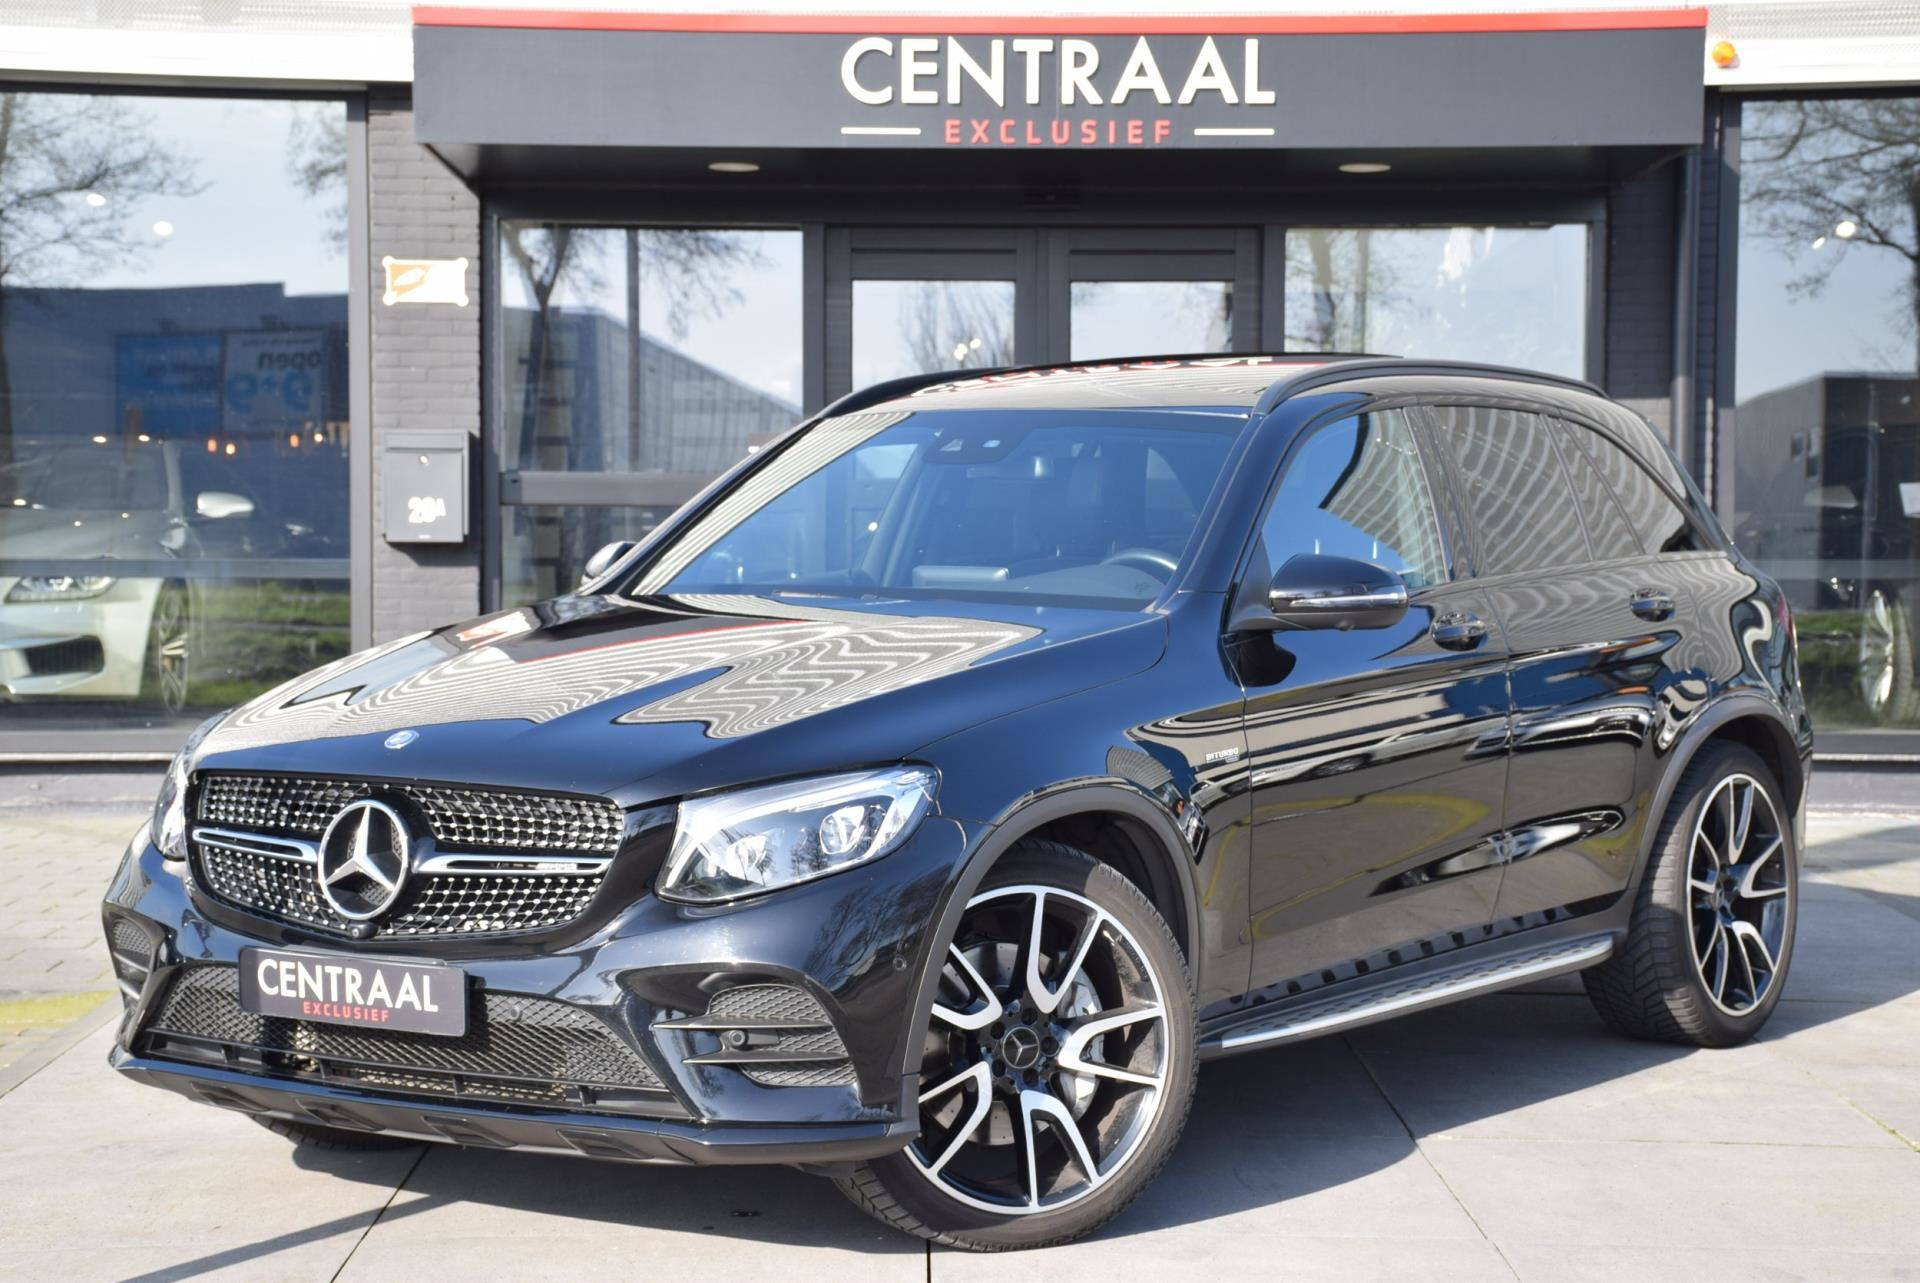 Mercedes-Benz GLC 43 AMG 4MATIC occasion - Centraal Exclusief B.V.